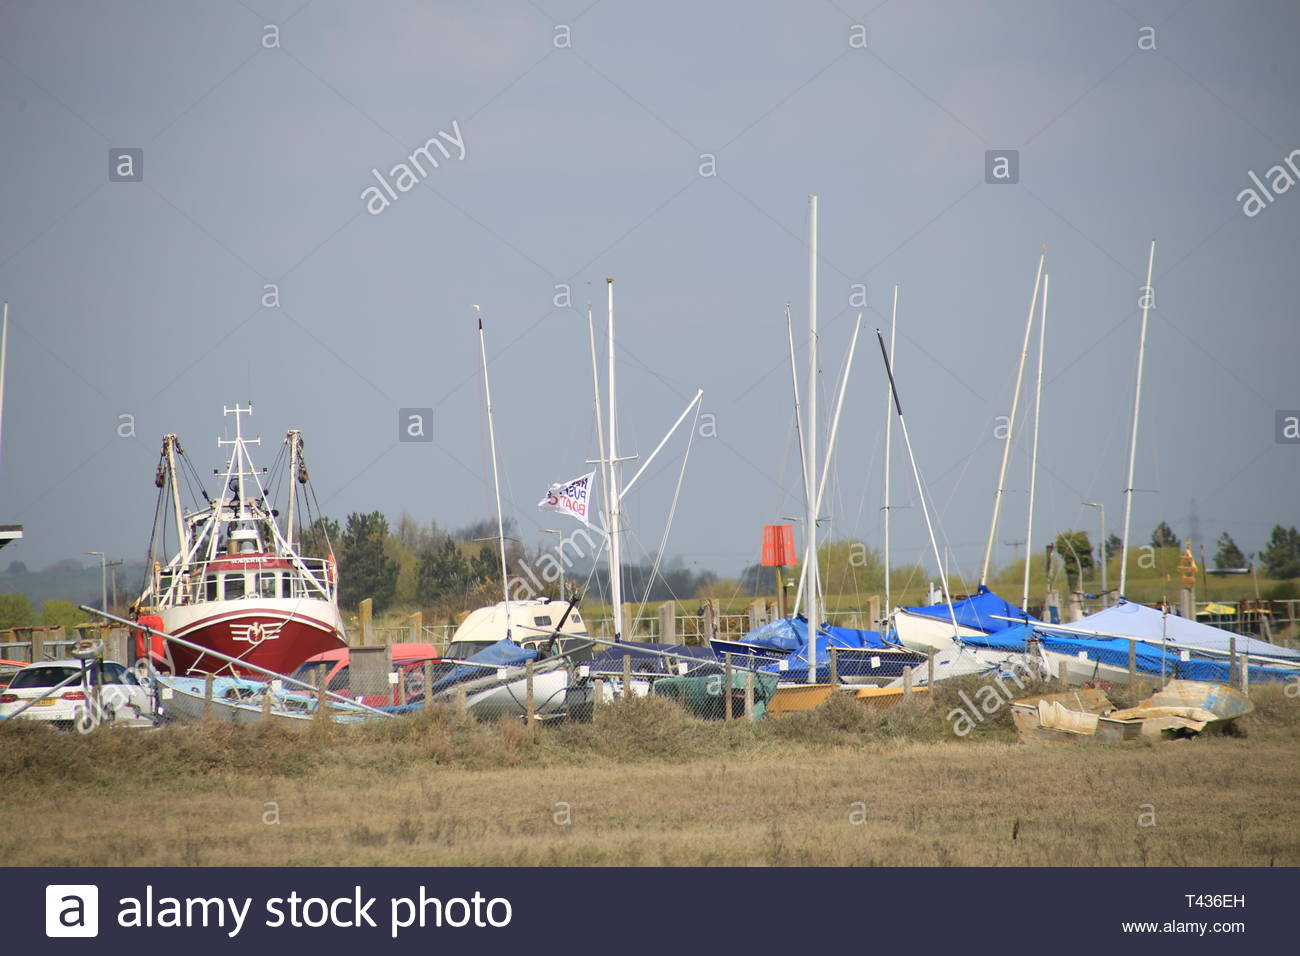 Boats moored at Rye harbour, East Sussex, UK. - Stock Image